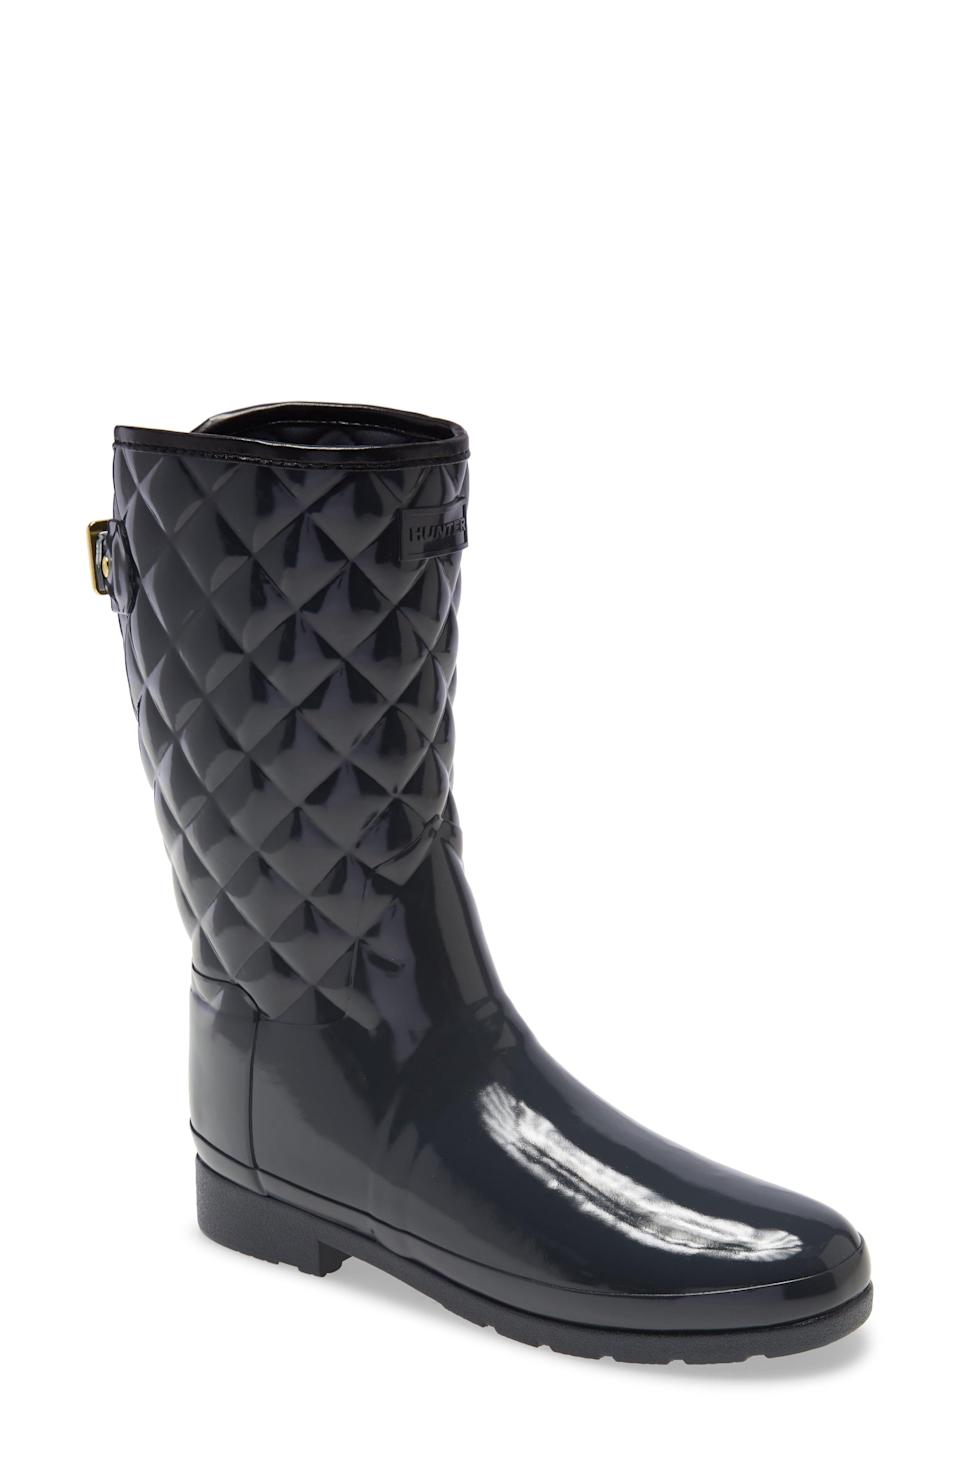 """<p><strong>HUNTER</strong></p><p>nordstrom.com</p><p><a href=""""https://go.redirectingat.com?id=74968X1596630&url=https%3A%2F%2Fwww.nordstrom.com%2Fs%2Fhunter-refined-high-gloss-quilted-short-waterproof-rain-boot-women%2F4710436&sref=https%3A%2F%2Fwww.townandcountrymag.com%2Fstyle%2Ffashion-trends%2Fg35967828%2Fnordstrom-spring-sale-2021%2F"""" rel=""""nofollow noopener"""" target=""""_blank"""" data-ylk=""""slk:Shop Now"""" class=""""link rapid-noclick-resp"""">Shop Now</a></p><p>$105</p><p><em>Original Price: $175</em></p>"""